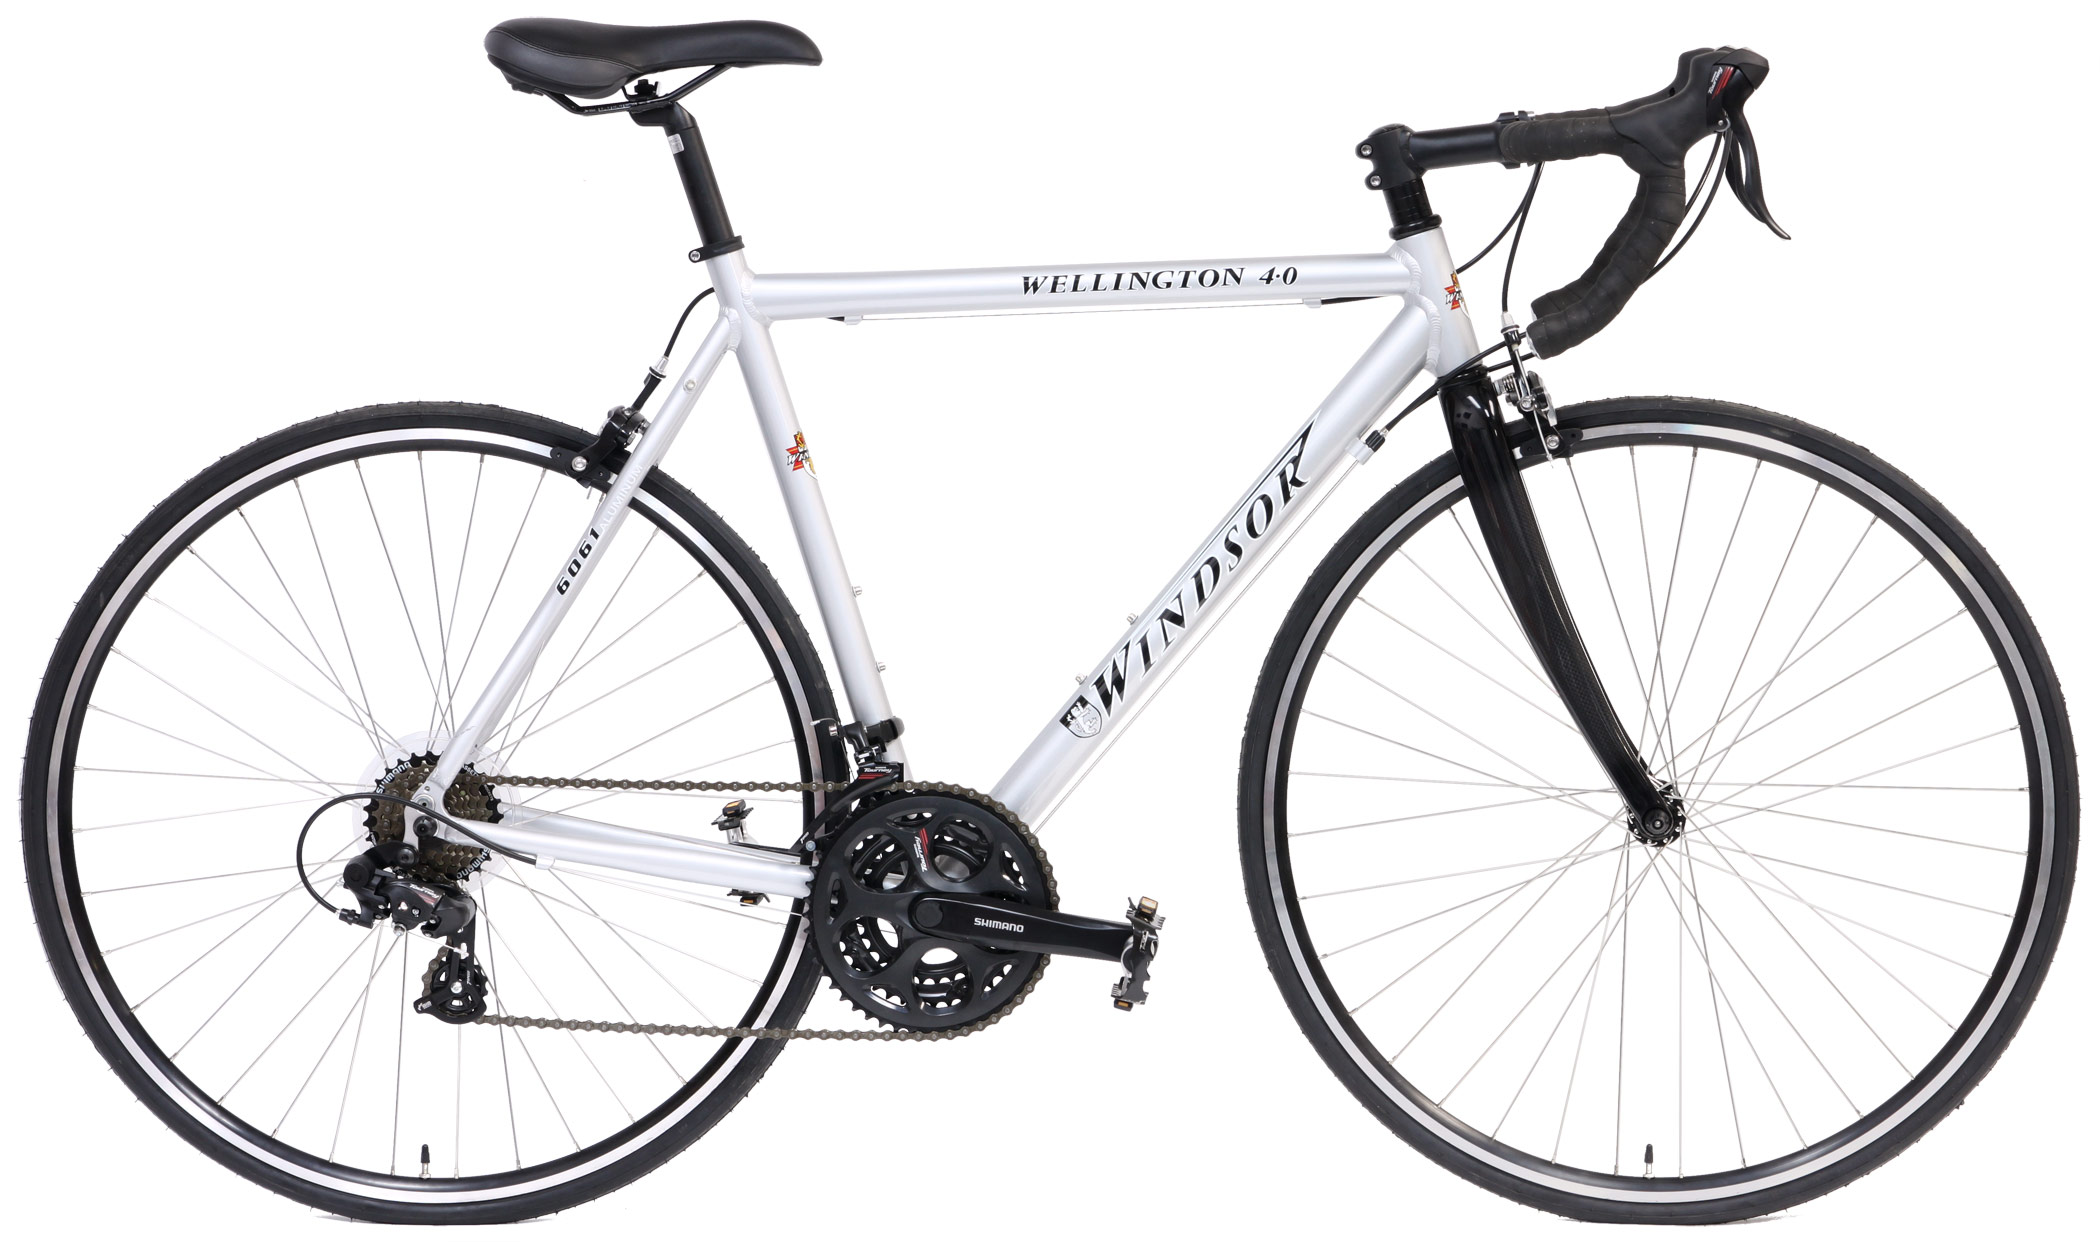 WELLINGTON 4.0 - SHIMANO 21sp ALUMINUM ROAD BIKE w/ CARBON